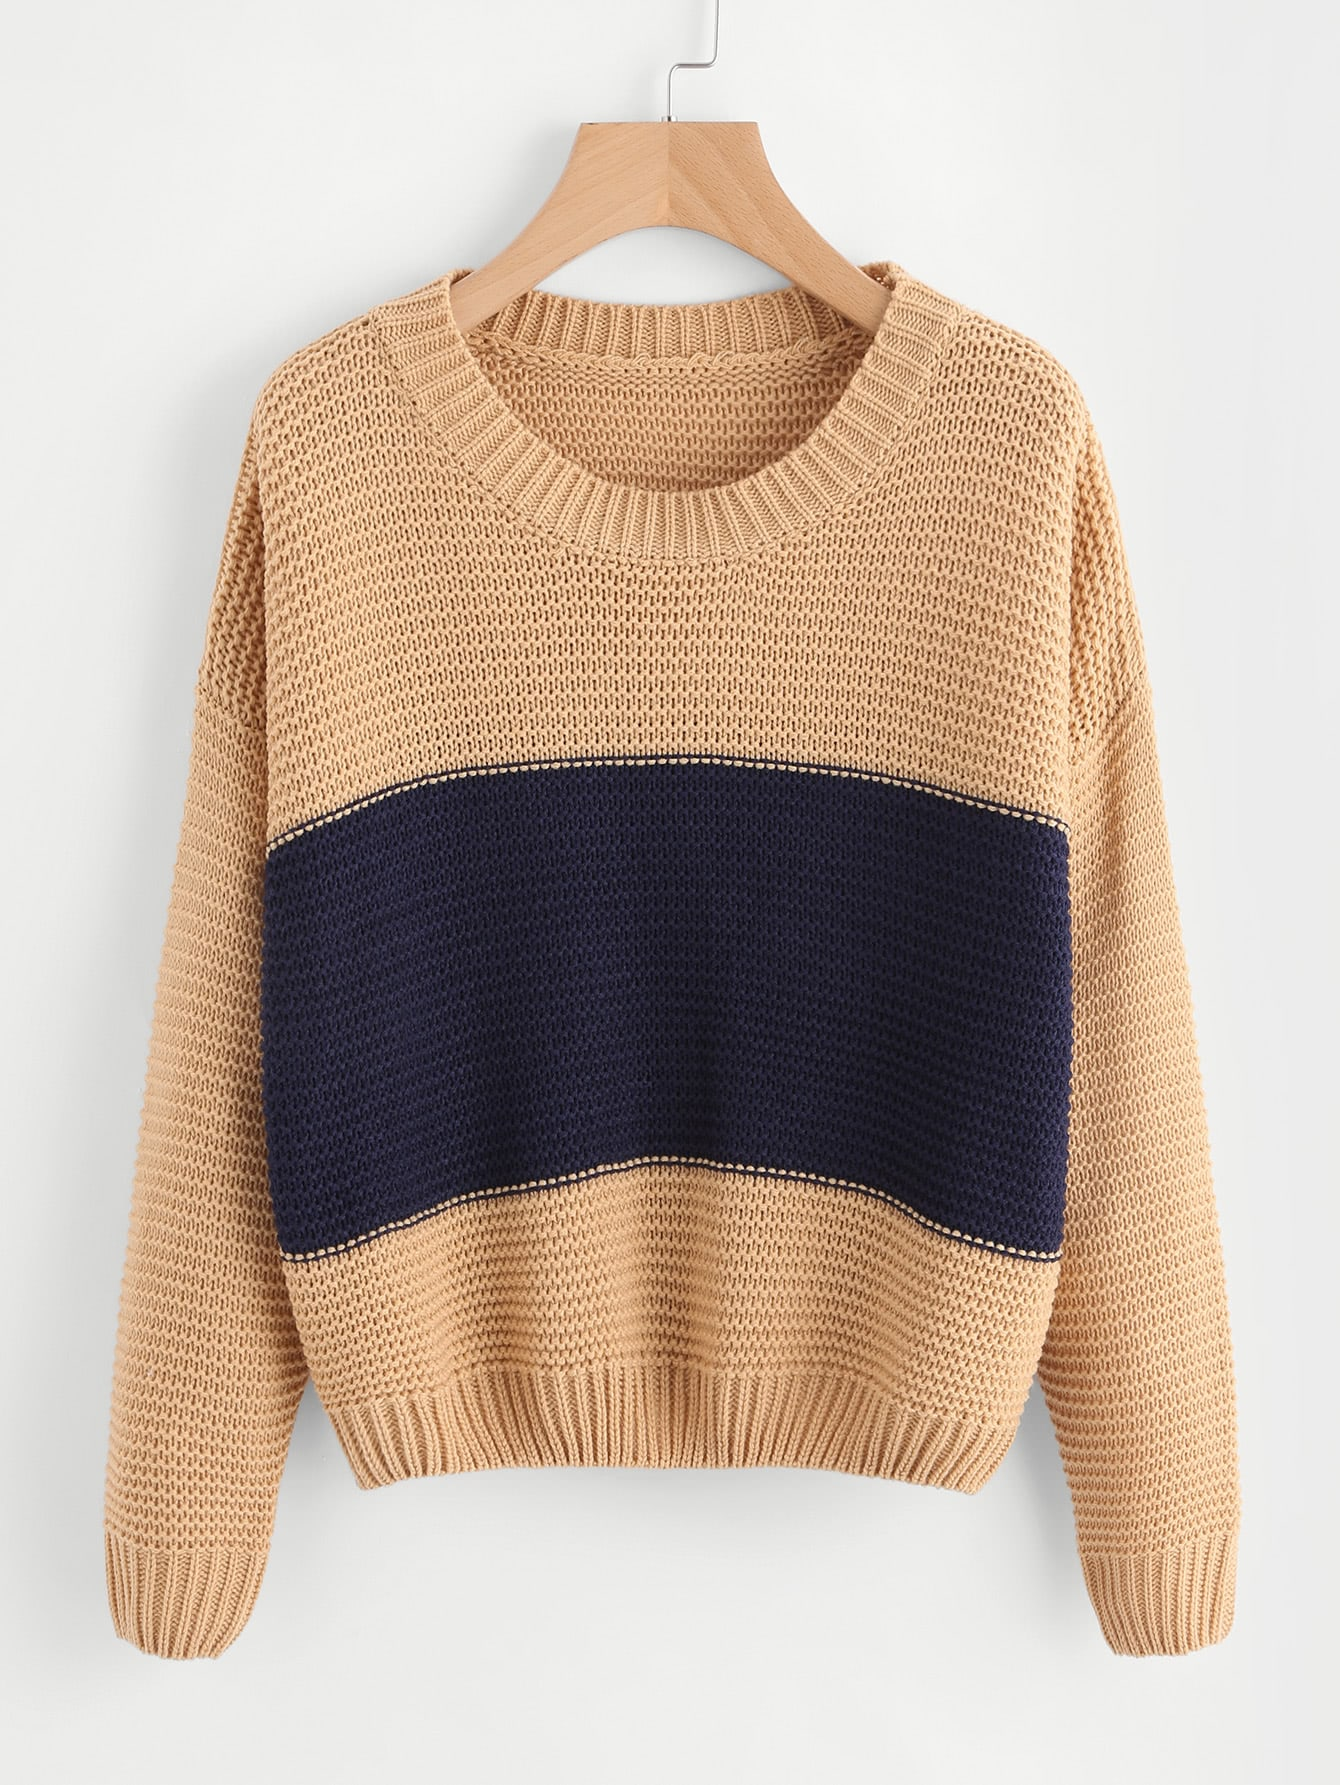 Ribbed Trim Two Tone Jumper sweater170804460